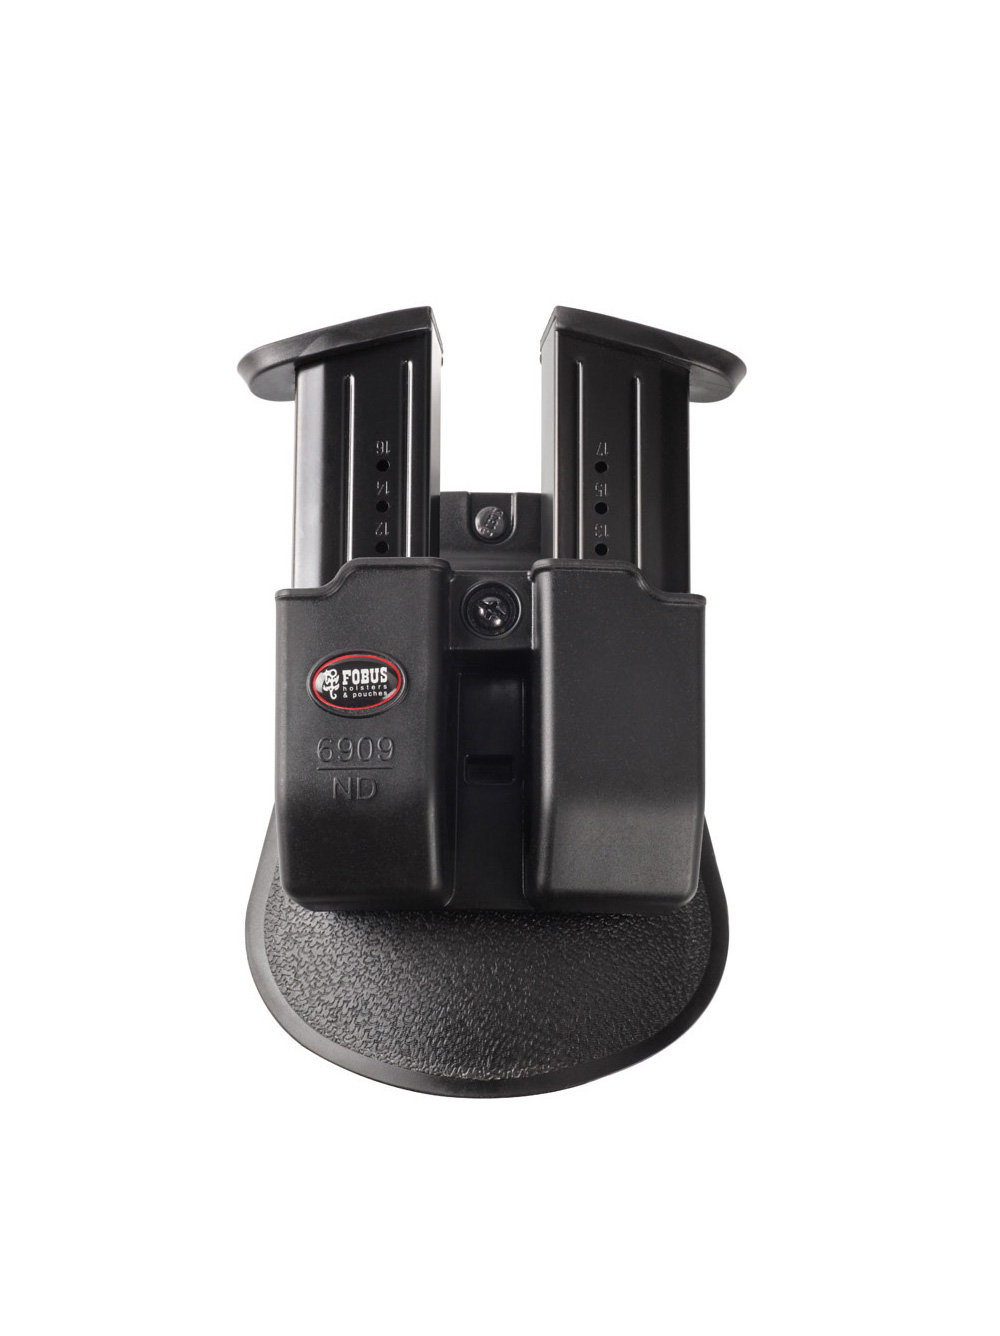 Fobus Double Magazine Pouch for Most 9mm Double Stack Magazines (not Glock) such as Ruger SR9, American Pistol 9mm, CZ P07, S&W M&P, Walther PPQ and similar others